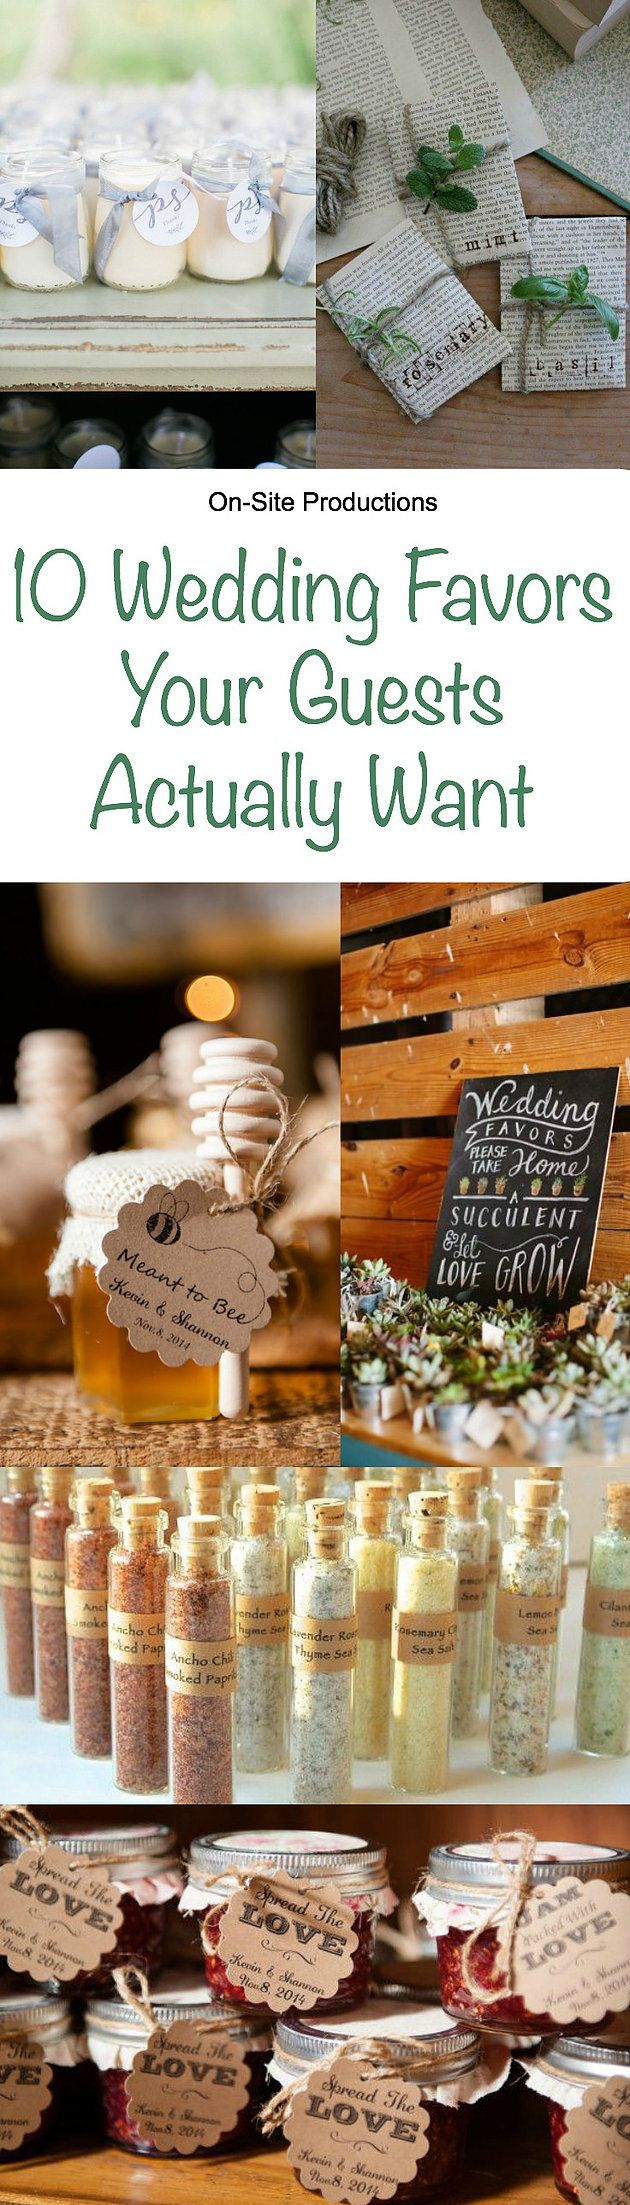 10 wedding favor ideas to thank your guests for coming that  your guests actually want!  These are adorable ideas, and mostly DIY projects that wouldn't cost that much!